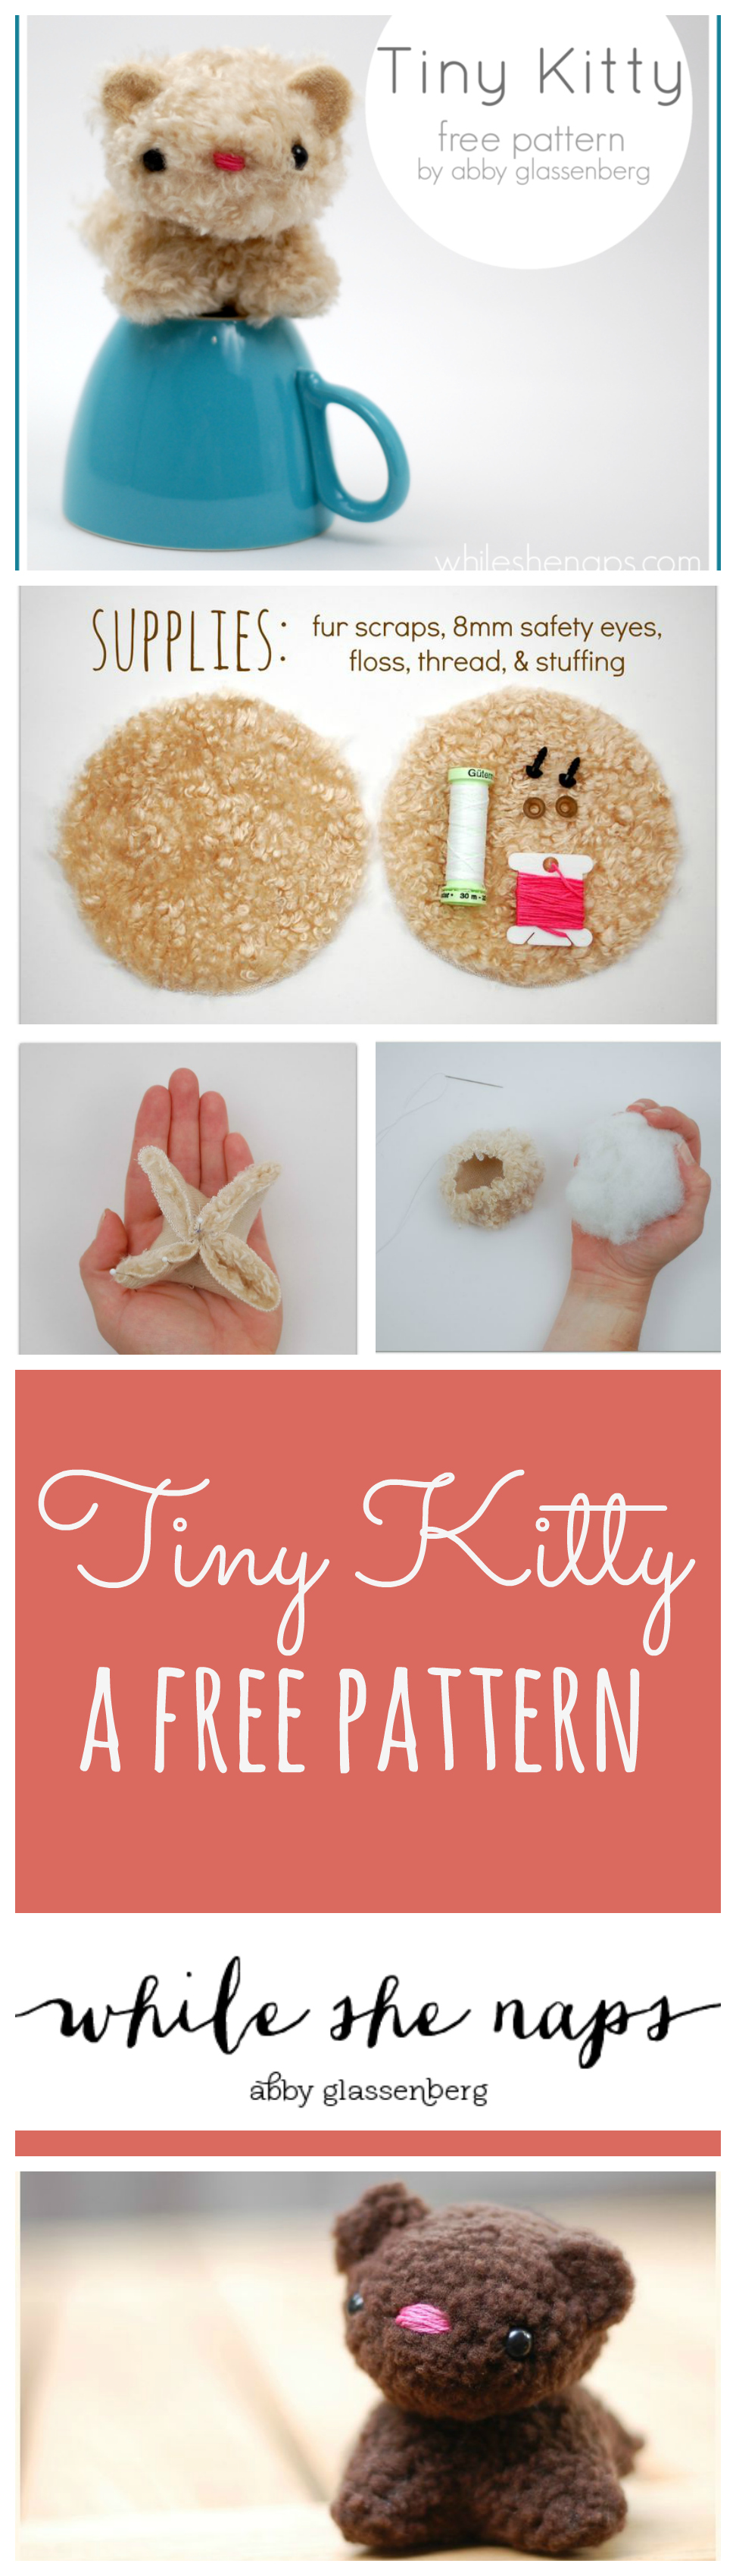 A free pattern for a Tiny Kitty.